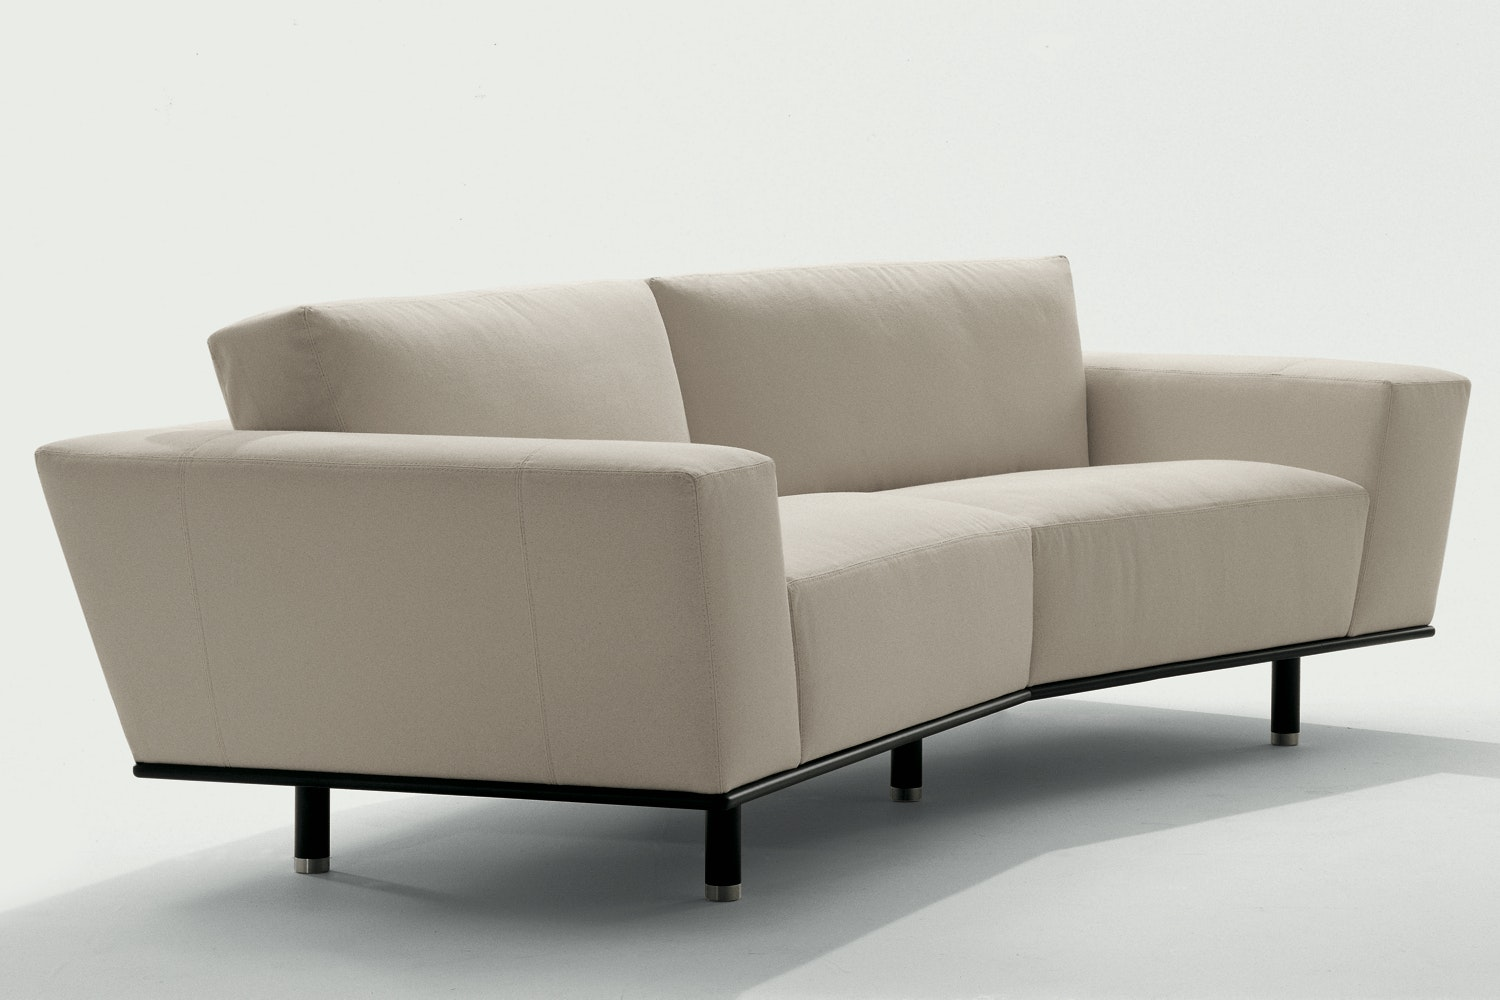 Regal Sofa by Antonello Mosca for Giorgetti